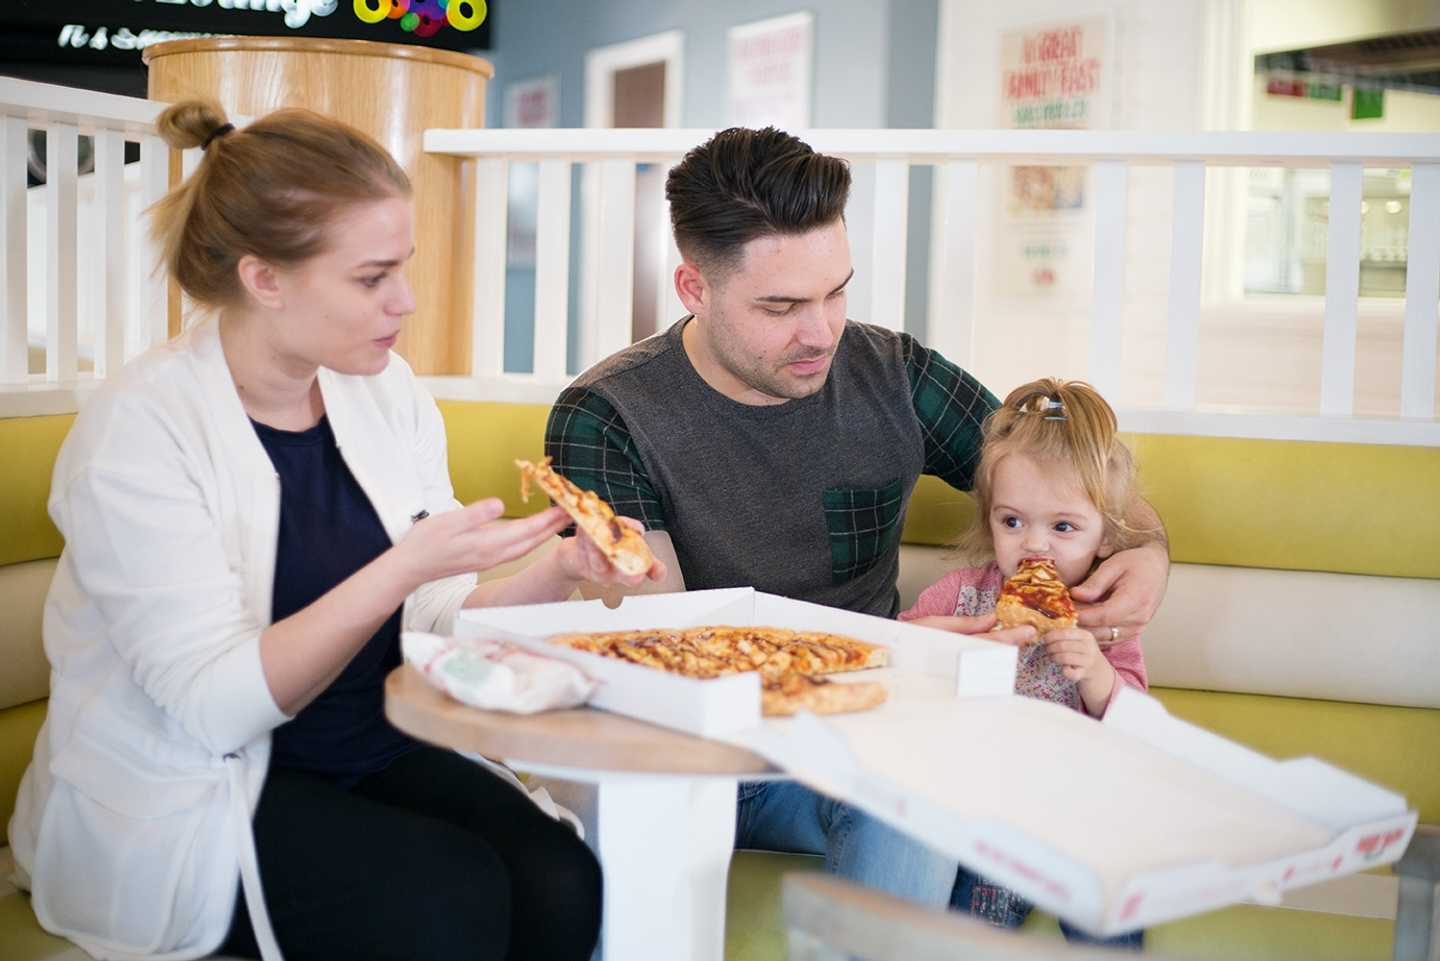 Guests enjoying pizza at Papa John's Pizza